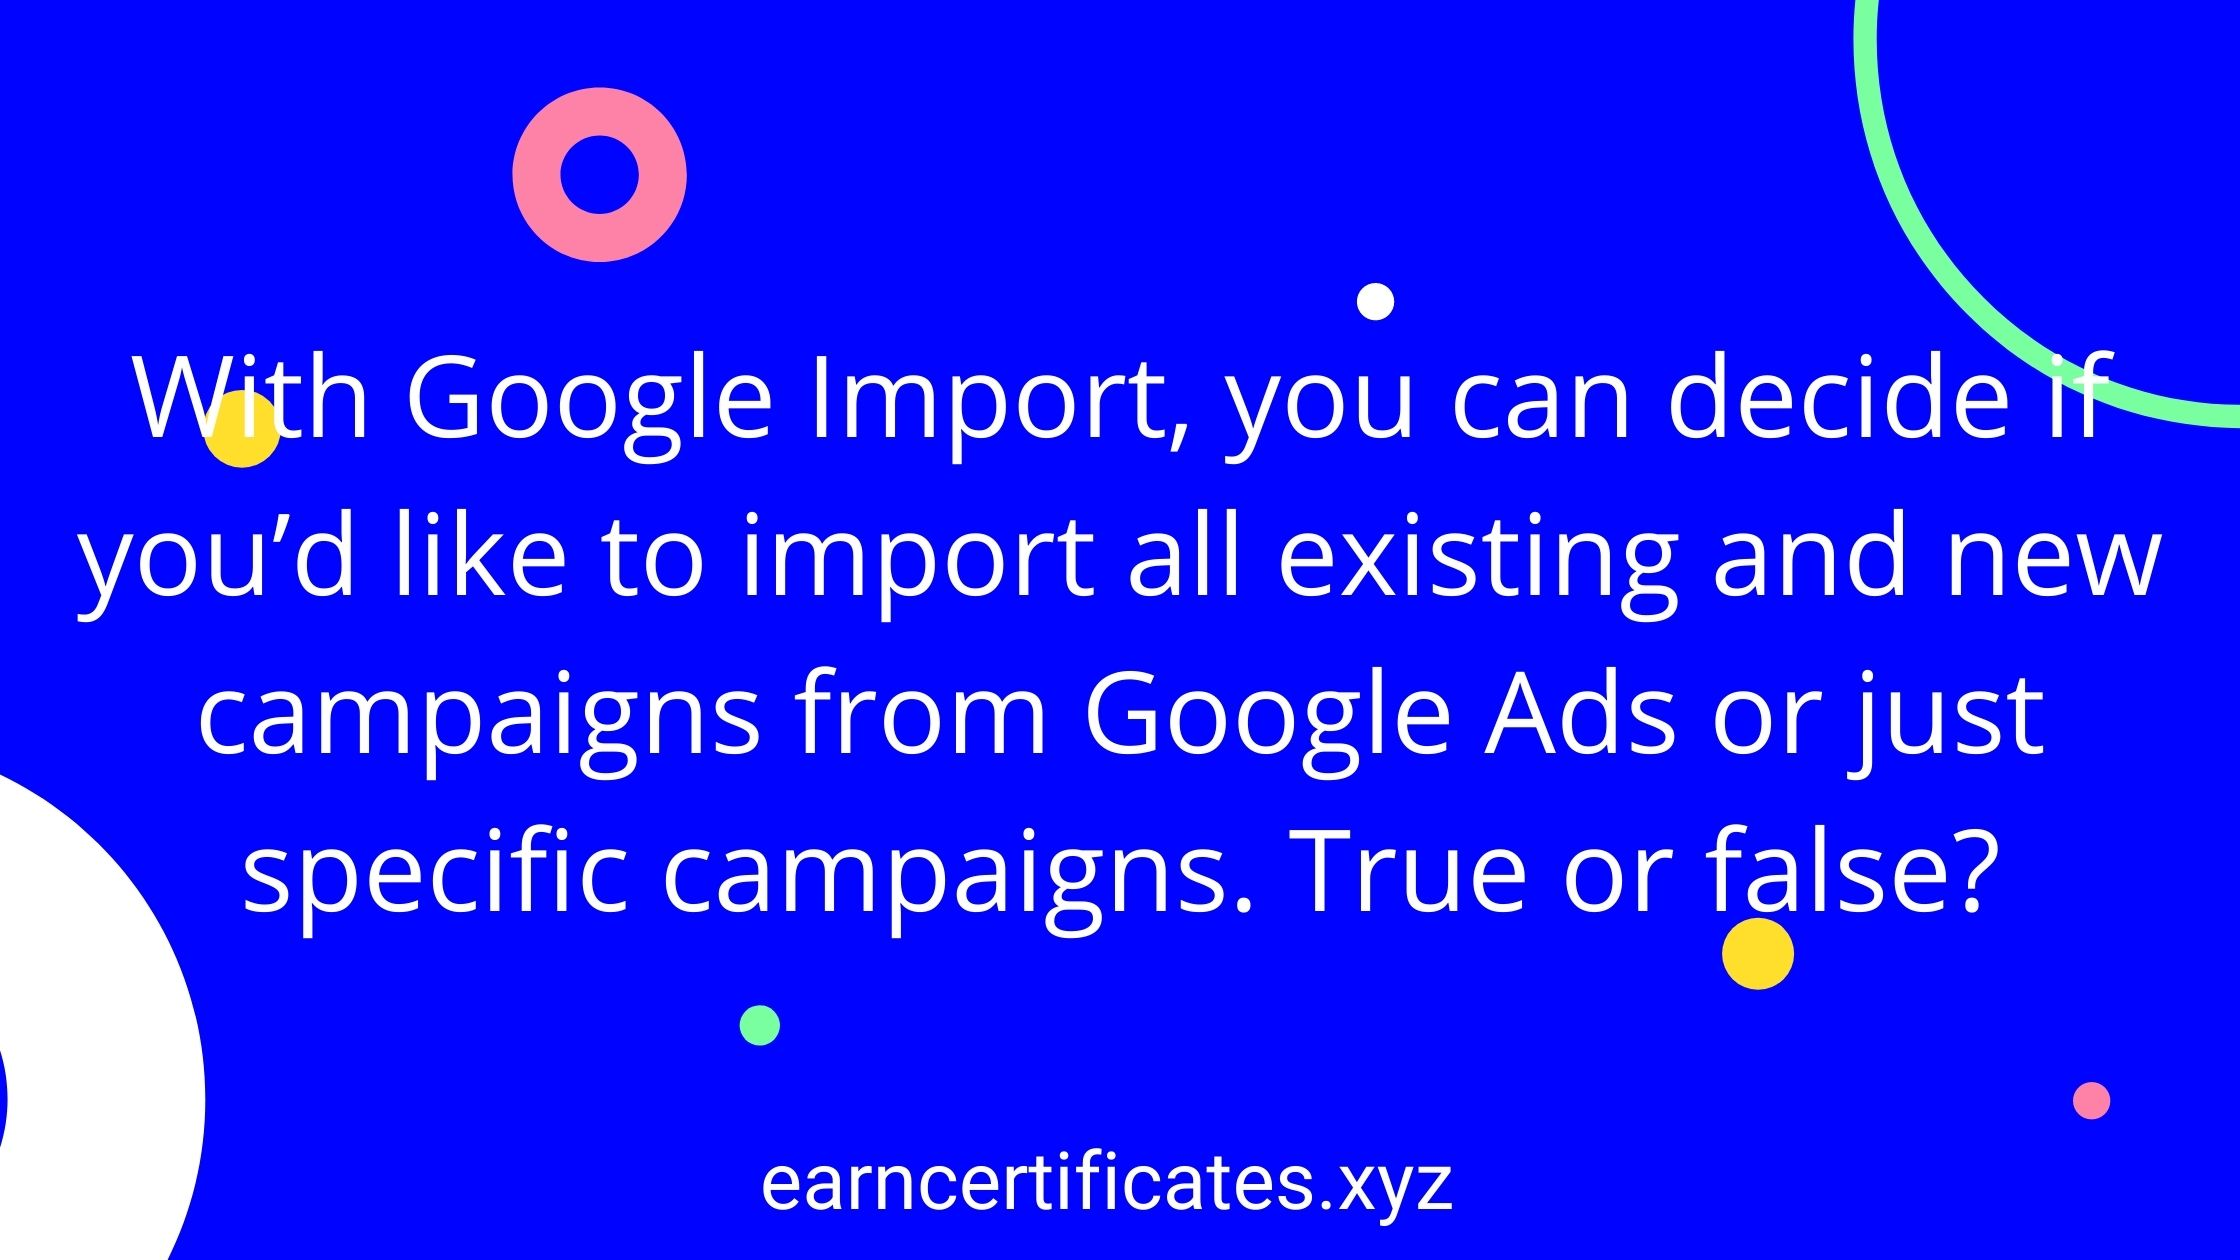 With Google Import, you can decide if you'd like to import all existing and new campaigns from Google Ads or just specific campaigns. True or false?